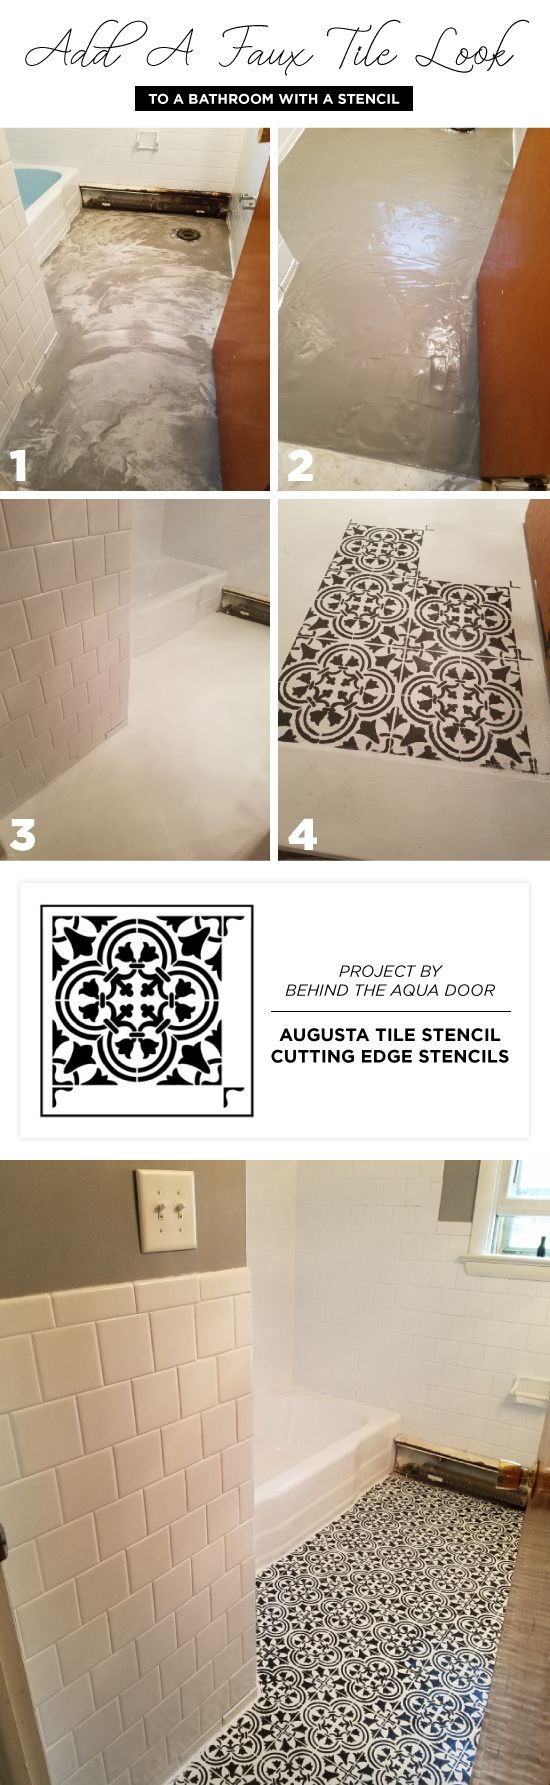 Add A Faux Tile Look To A Bathroom With A Stencil | Cement bathroom ...